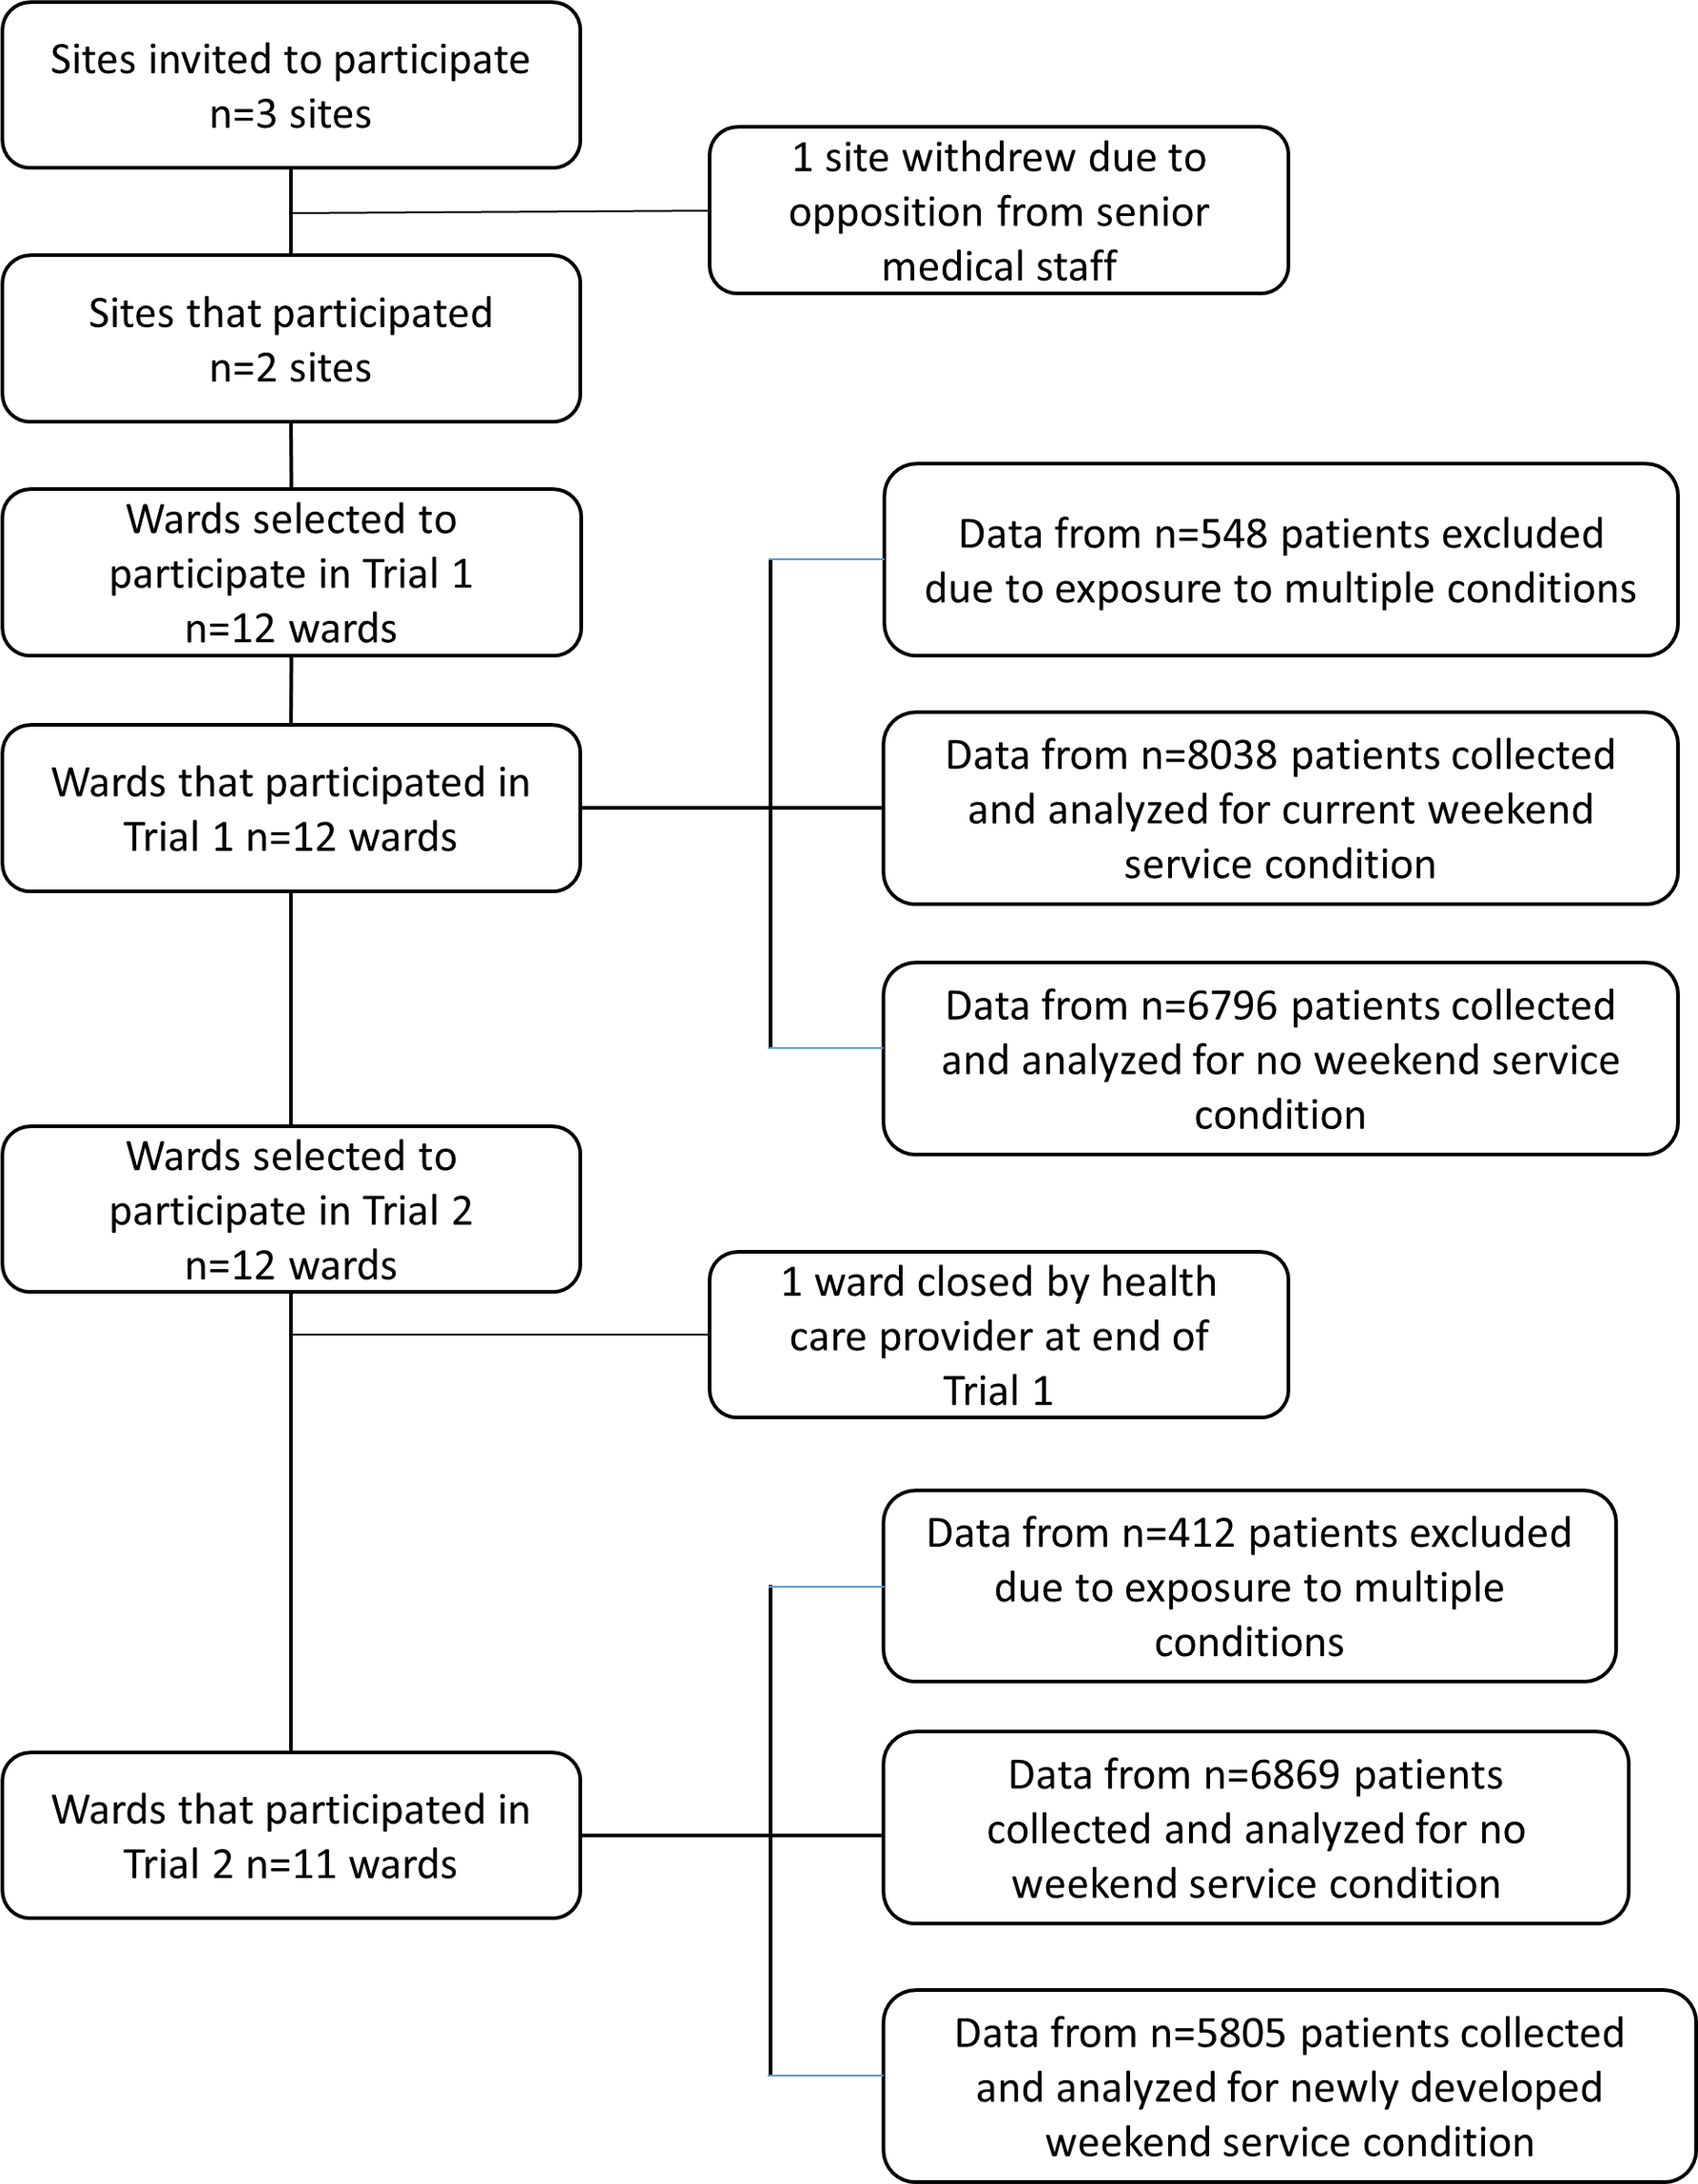 CONSORT flow chart of site, ward, and patient involvement in data collection and analysis.